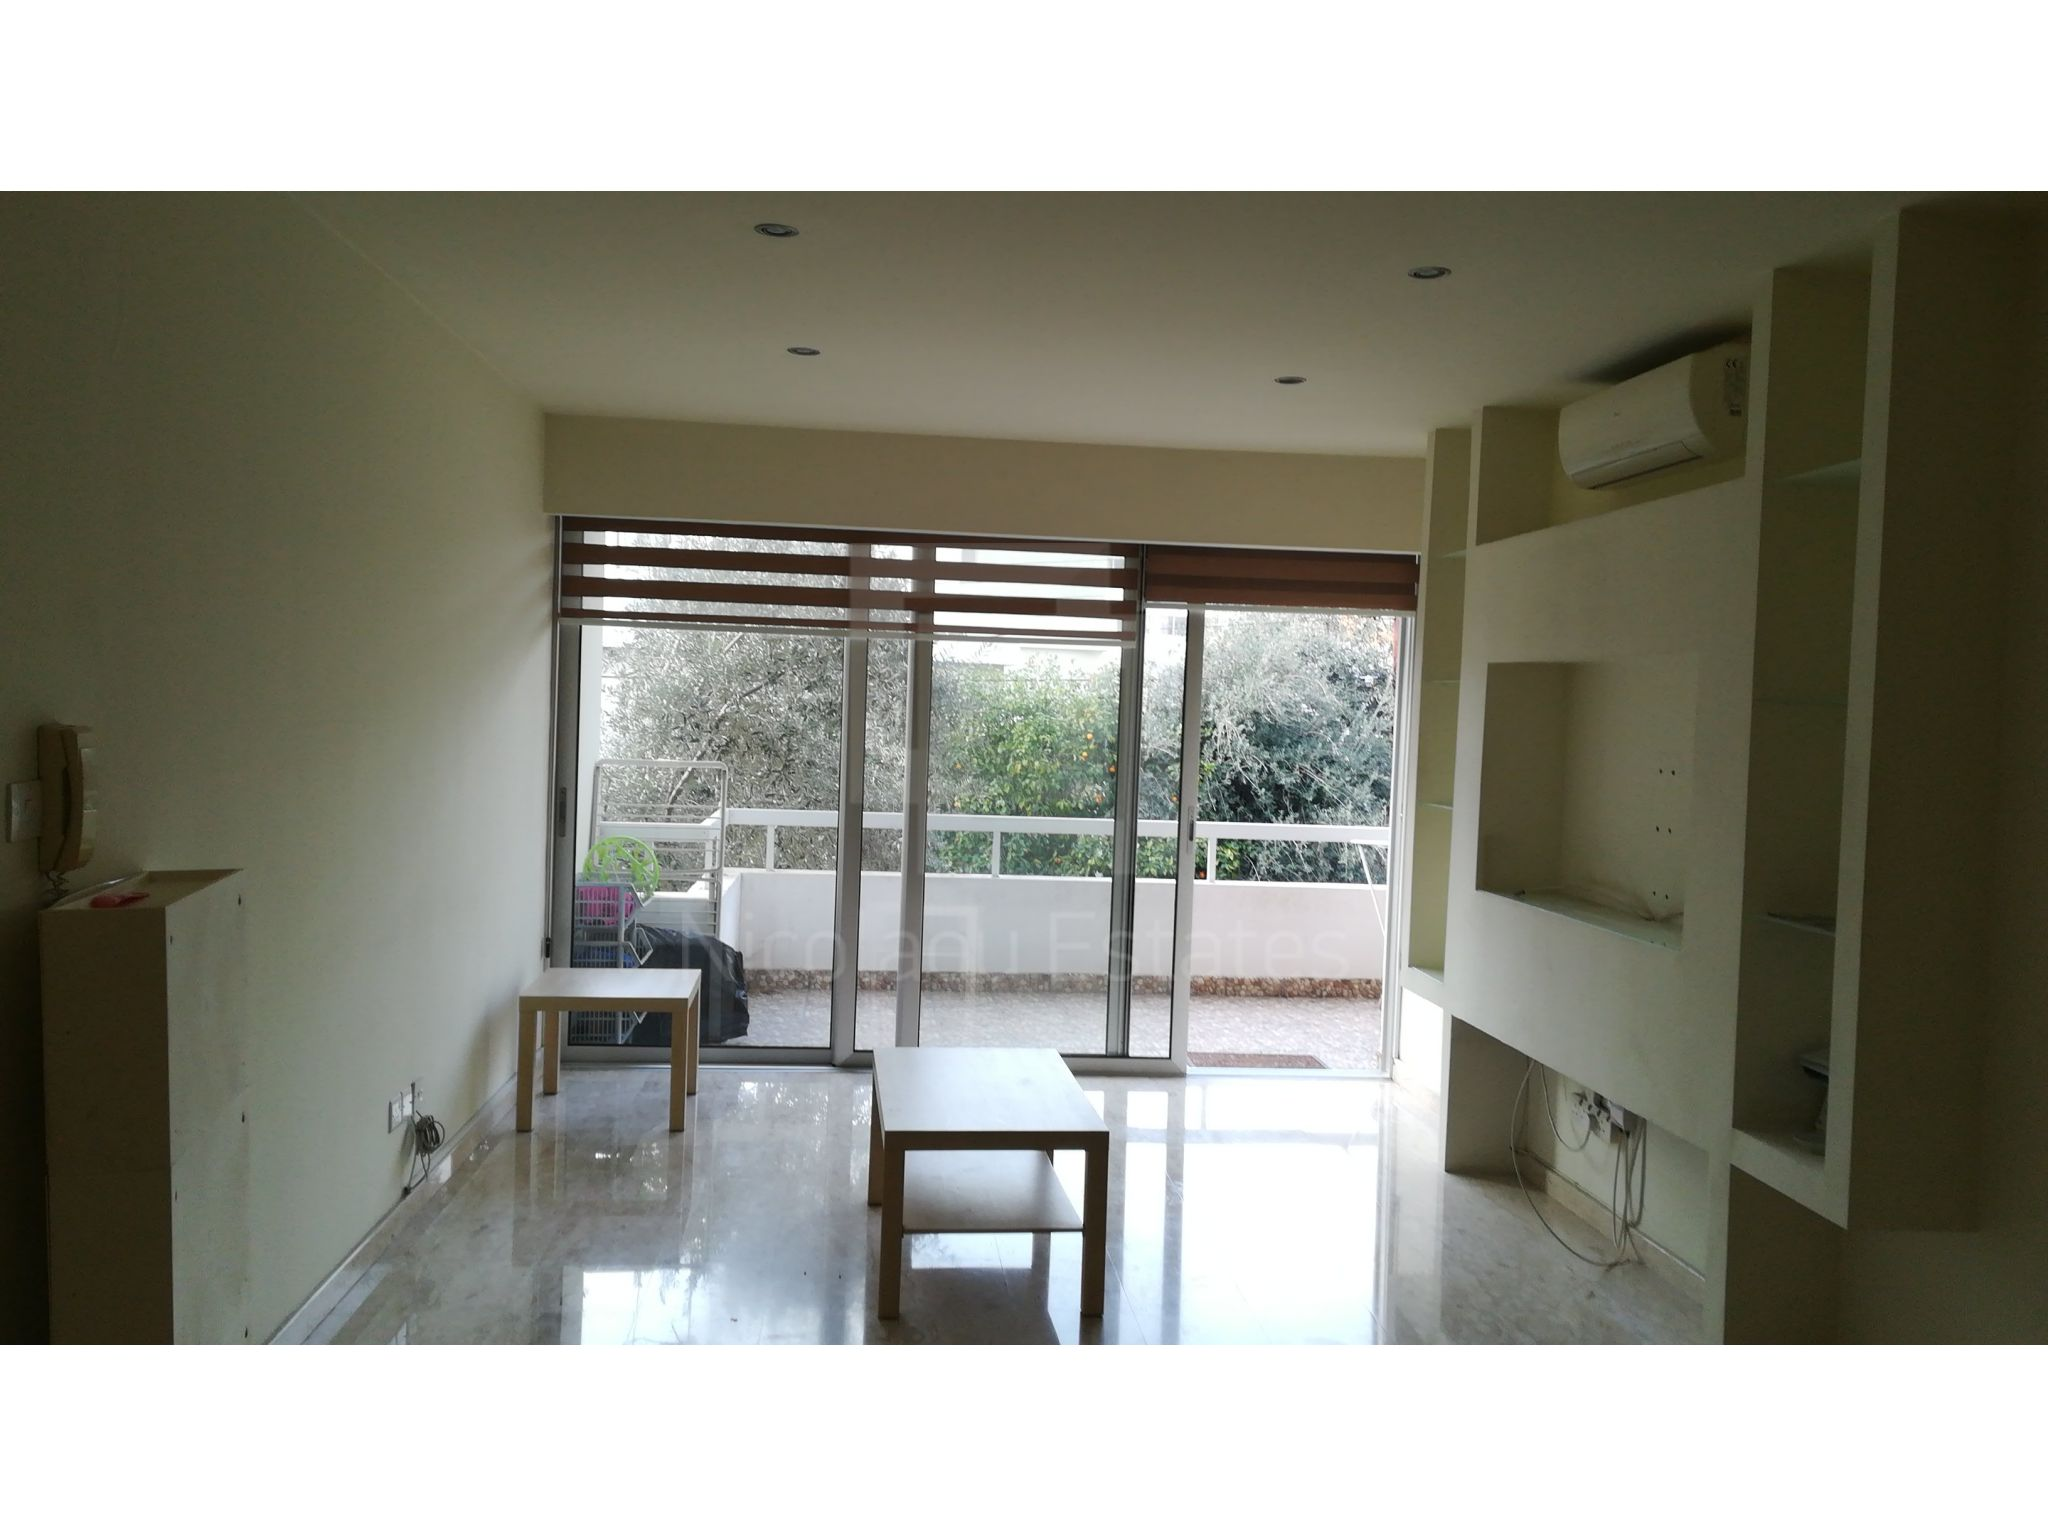 For Rent Long Term Two Bedroom Apartment For Rent In Strovolos Near European University Eur 600